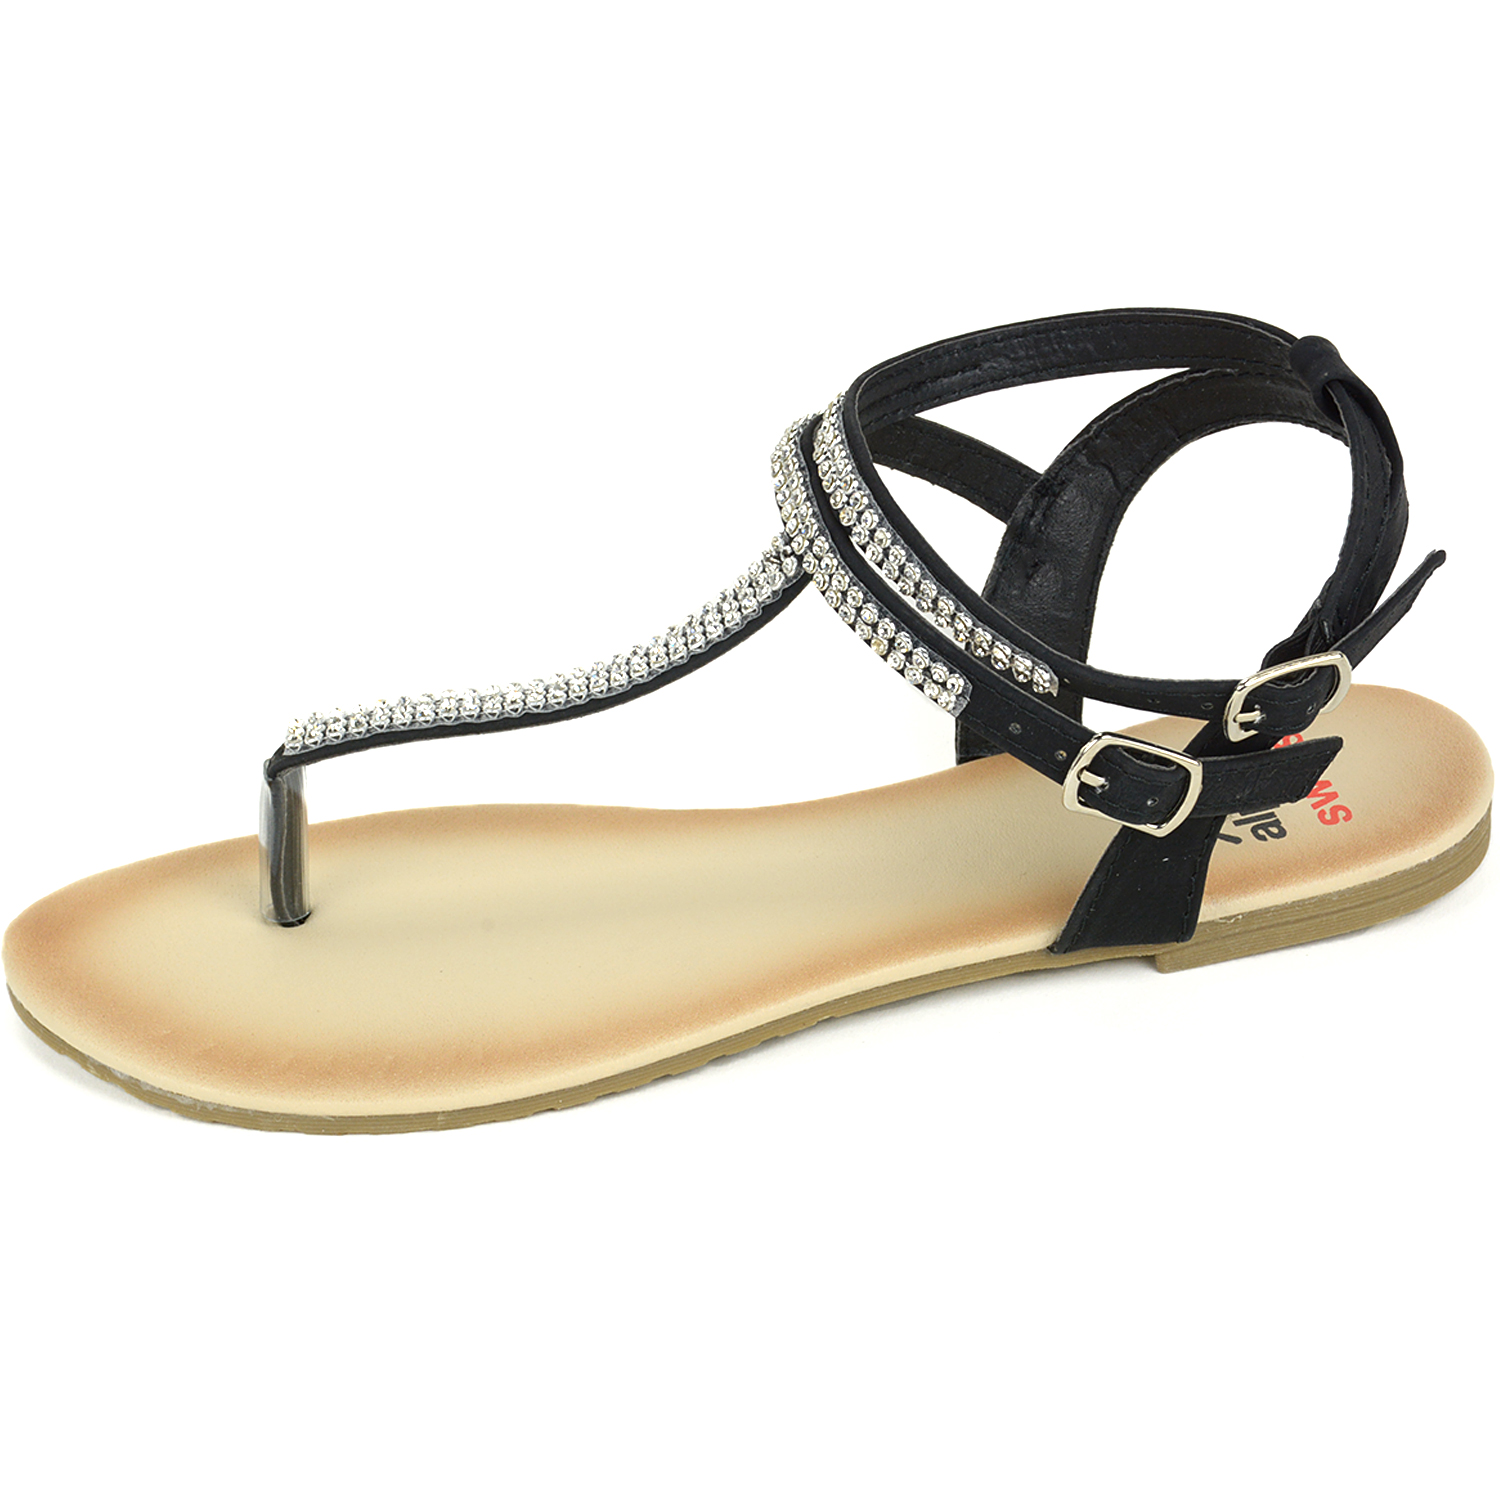 Alpine Swiss Women's Gladiator Sandals T-Strap Slingback ...